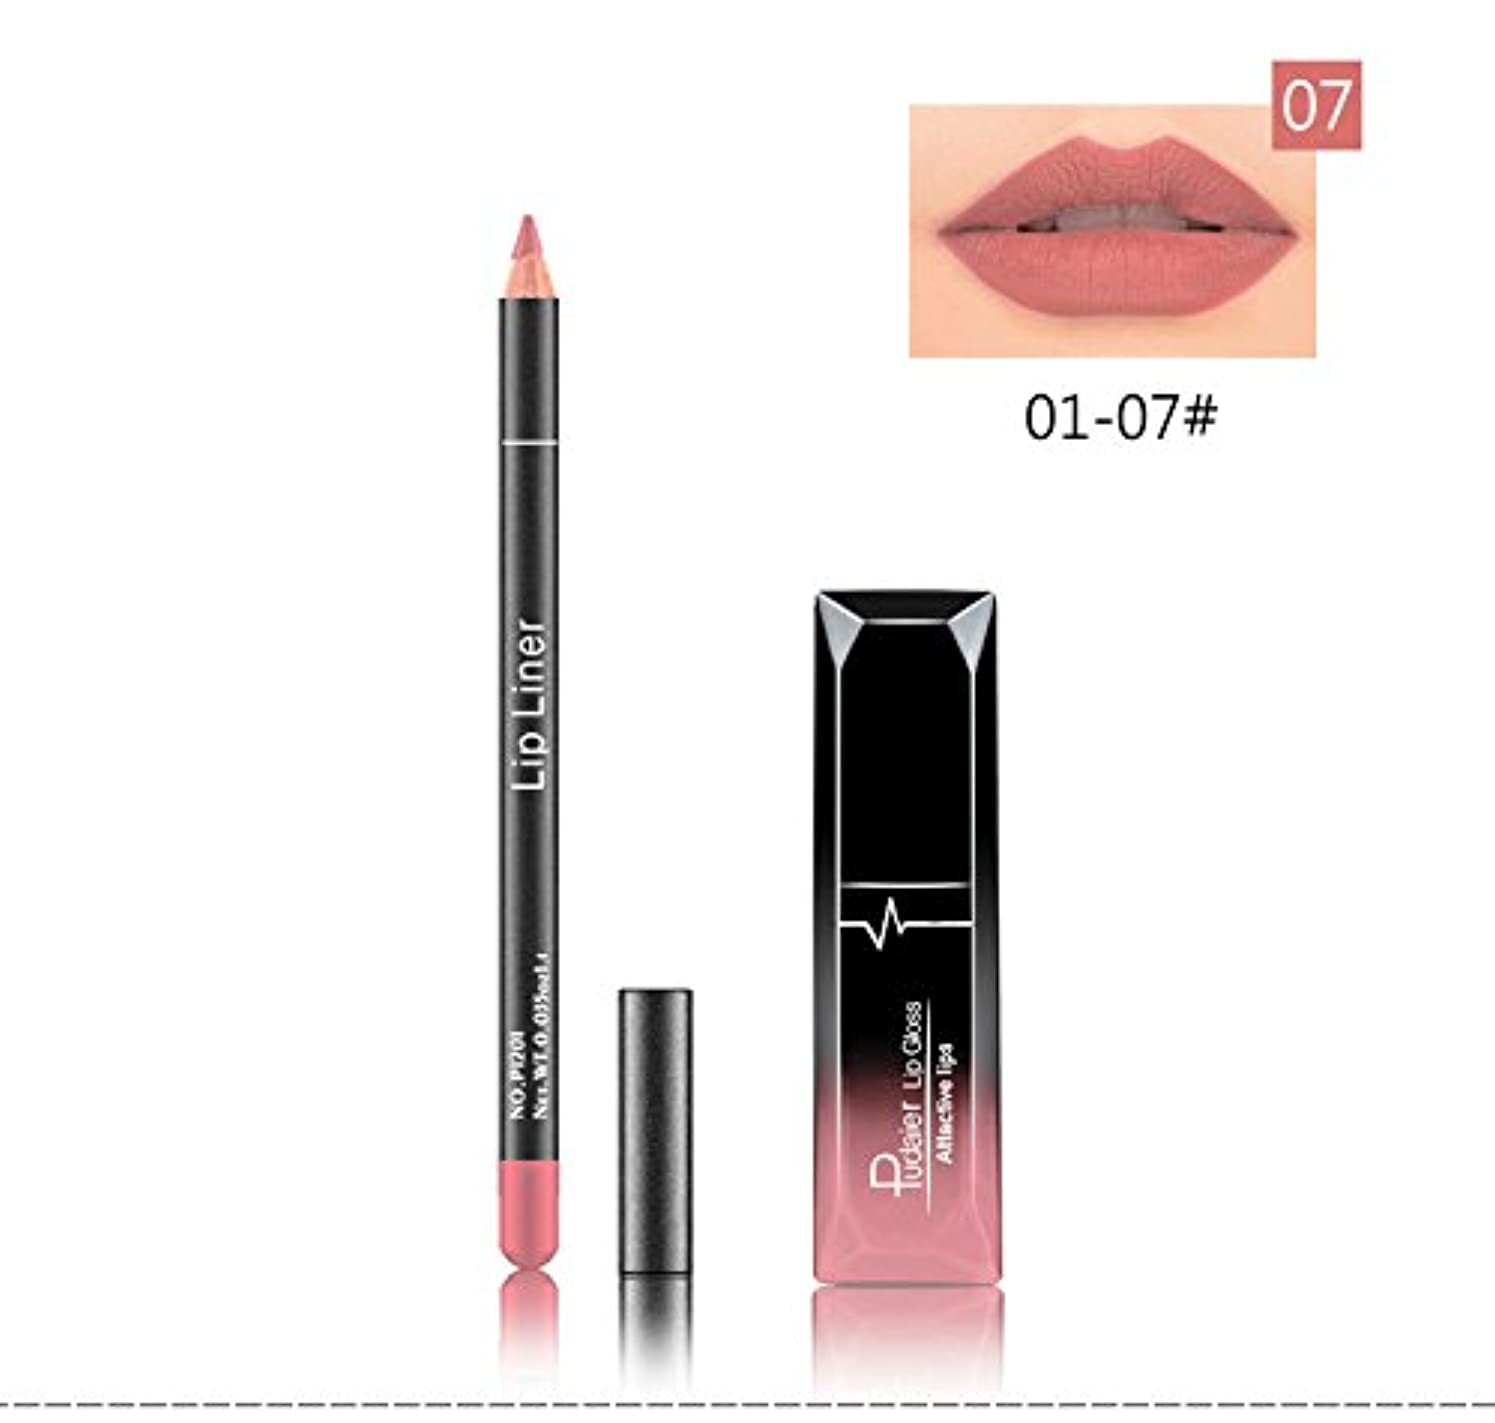 とティーム均等に好意(07) Pudaier 1pc Matte Liquid Lipstick Cosmetic Lip Kit+ 1 Pc Nude Lip Liner Pencil MakeUp Set Waterproof Long...